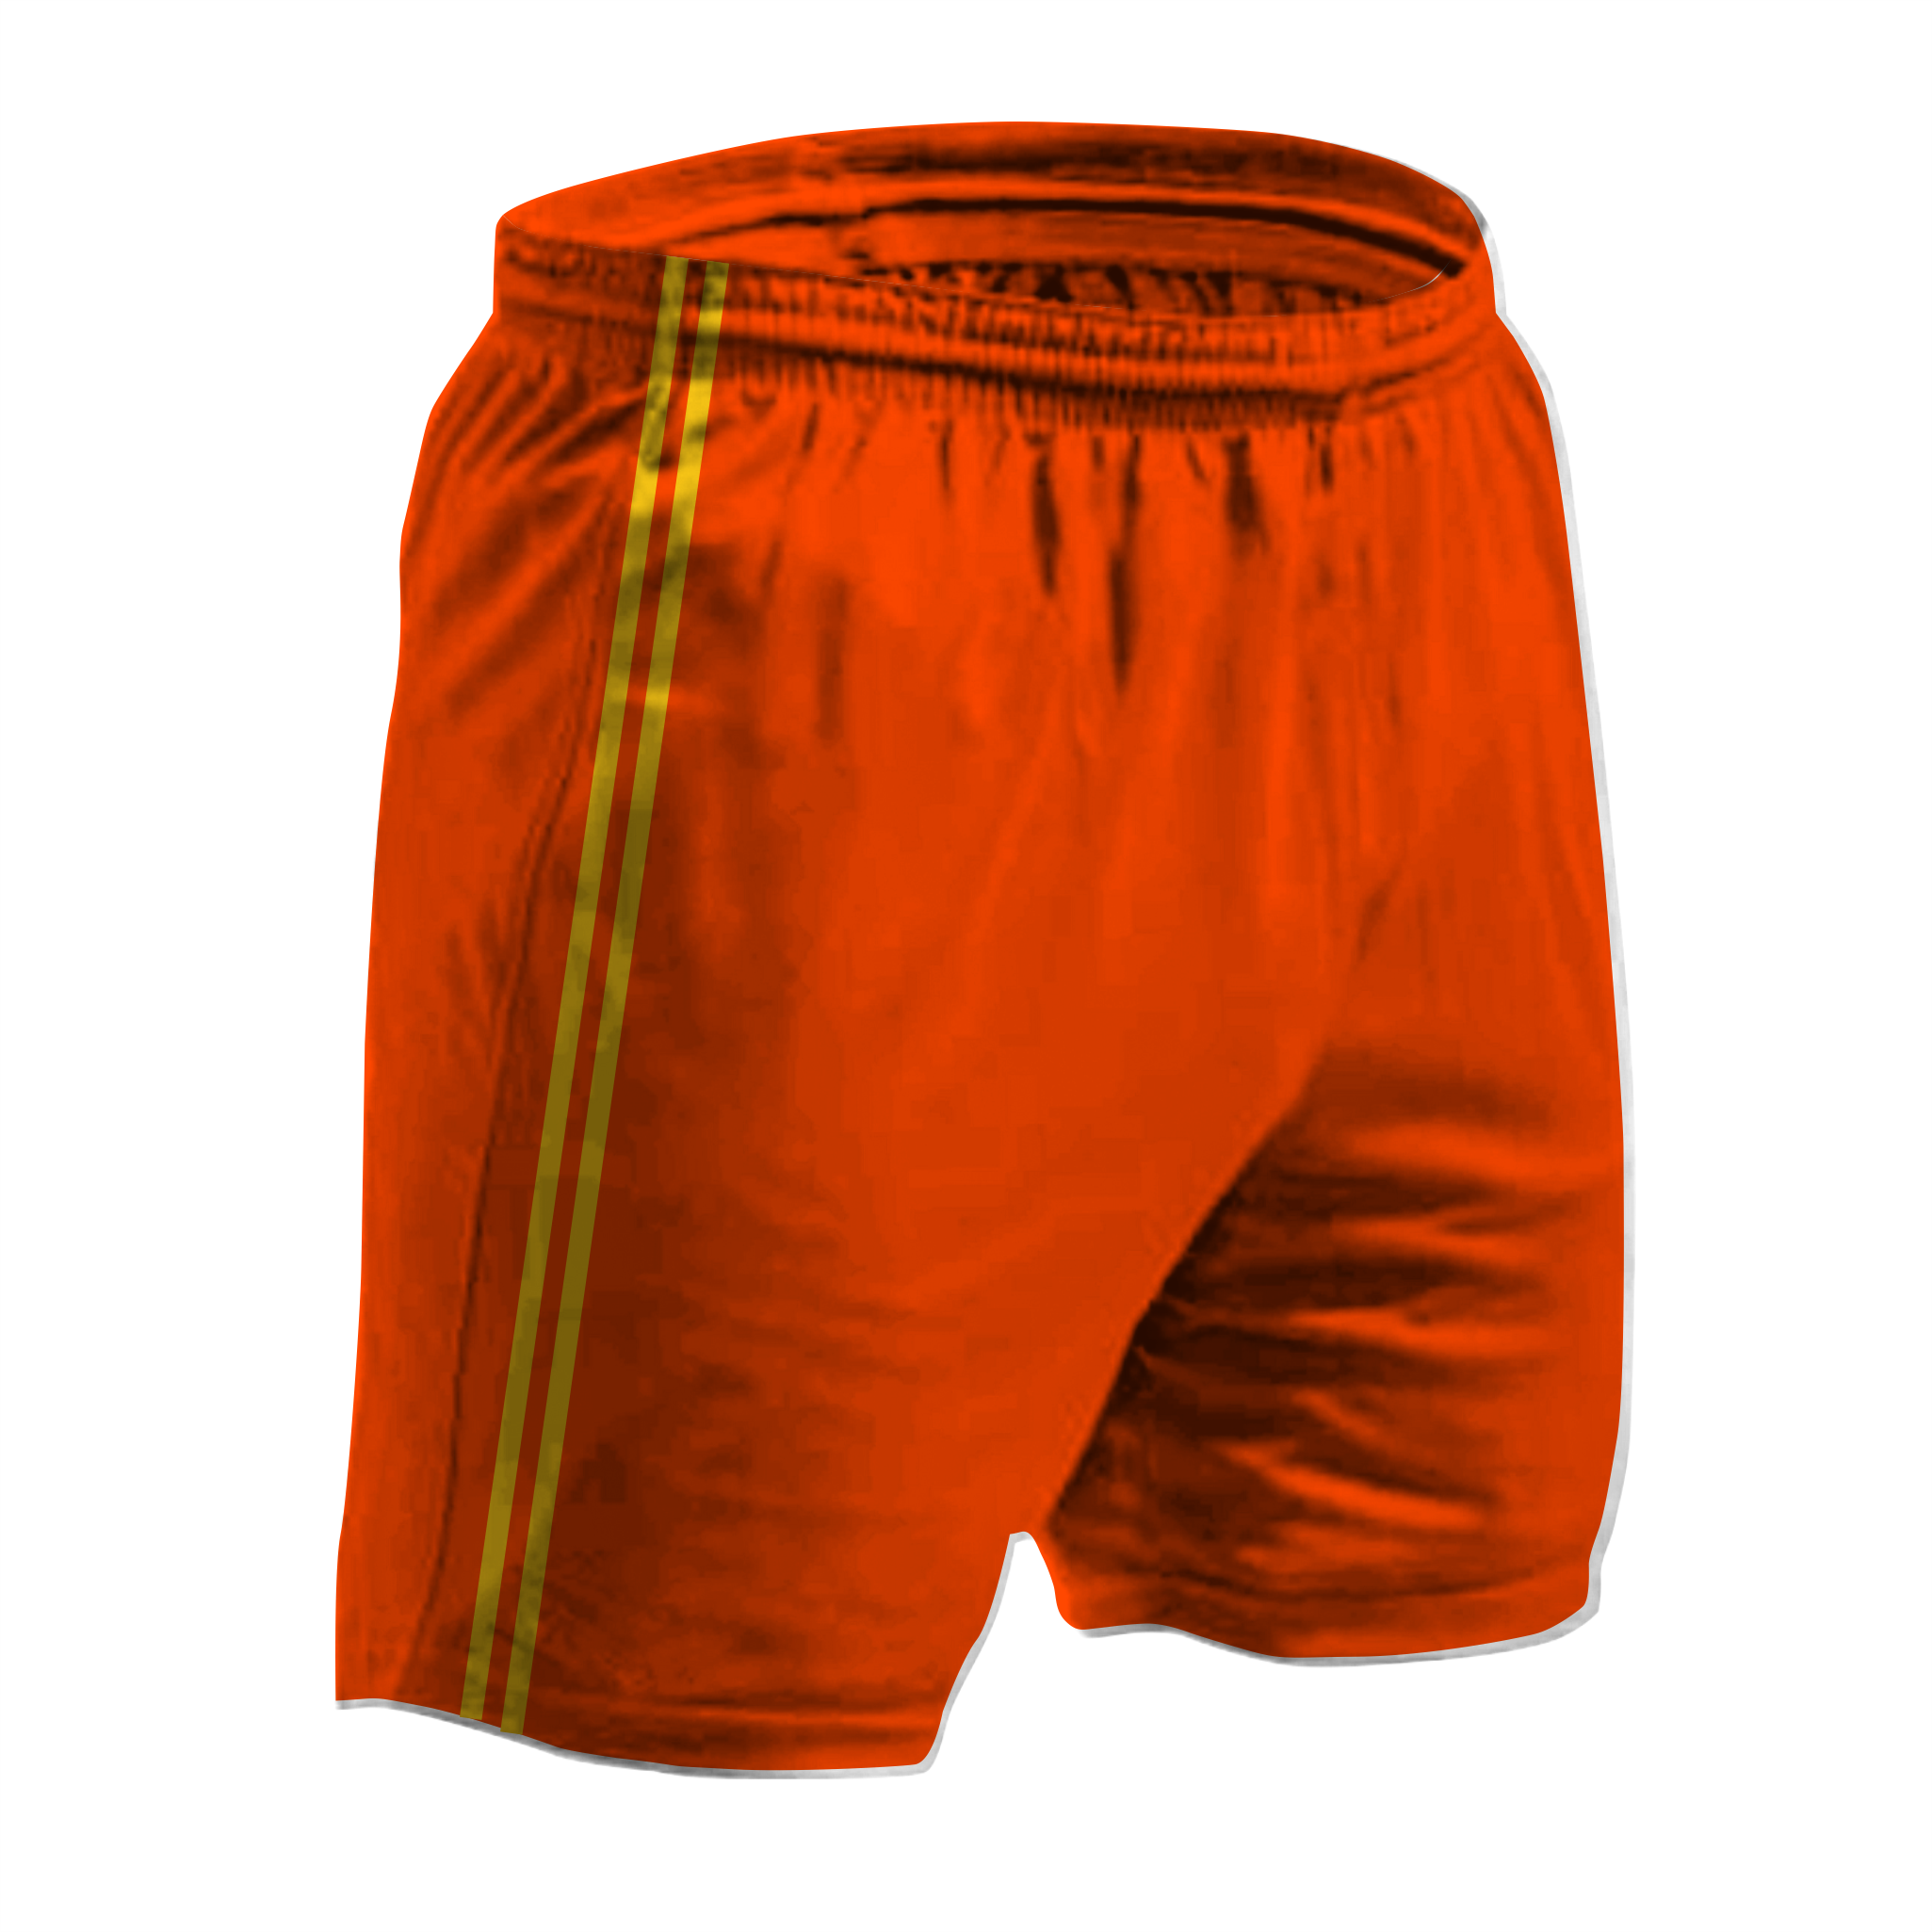 Panelled - Zuco football shorts - Holland